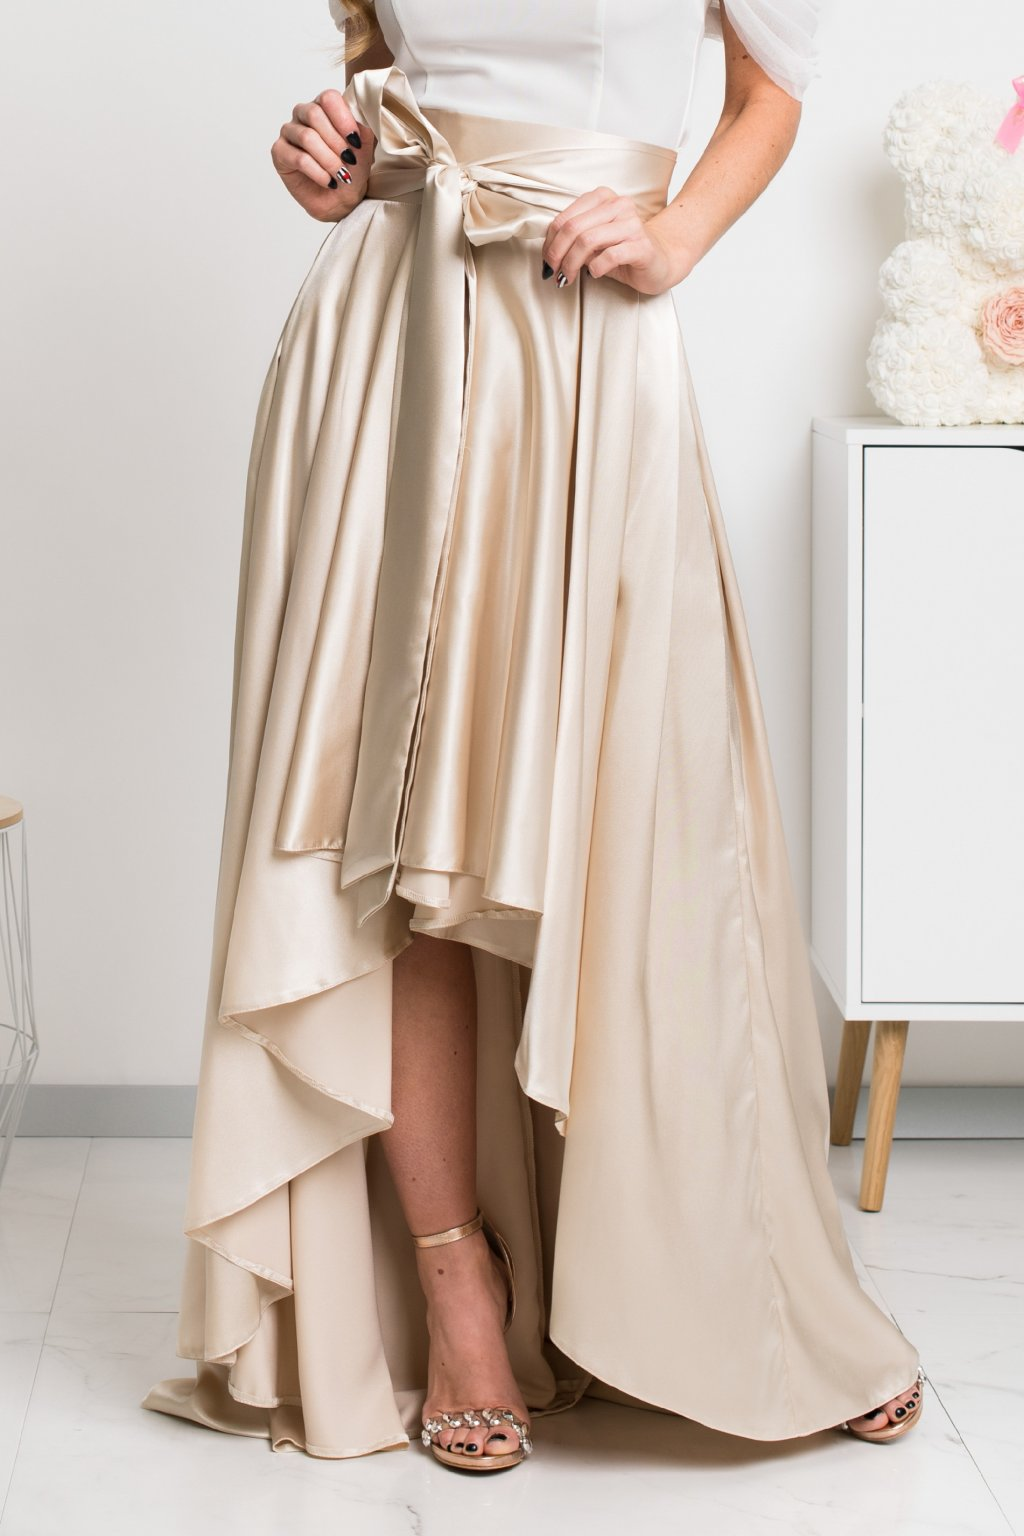 Gold satin asymmetric skirt